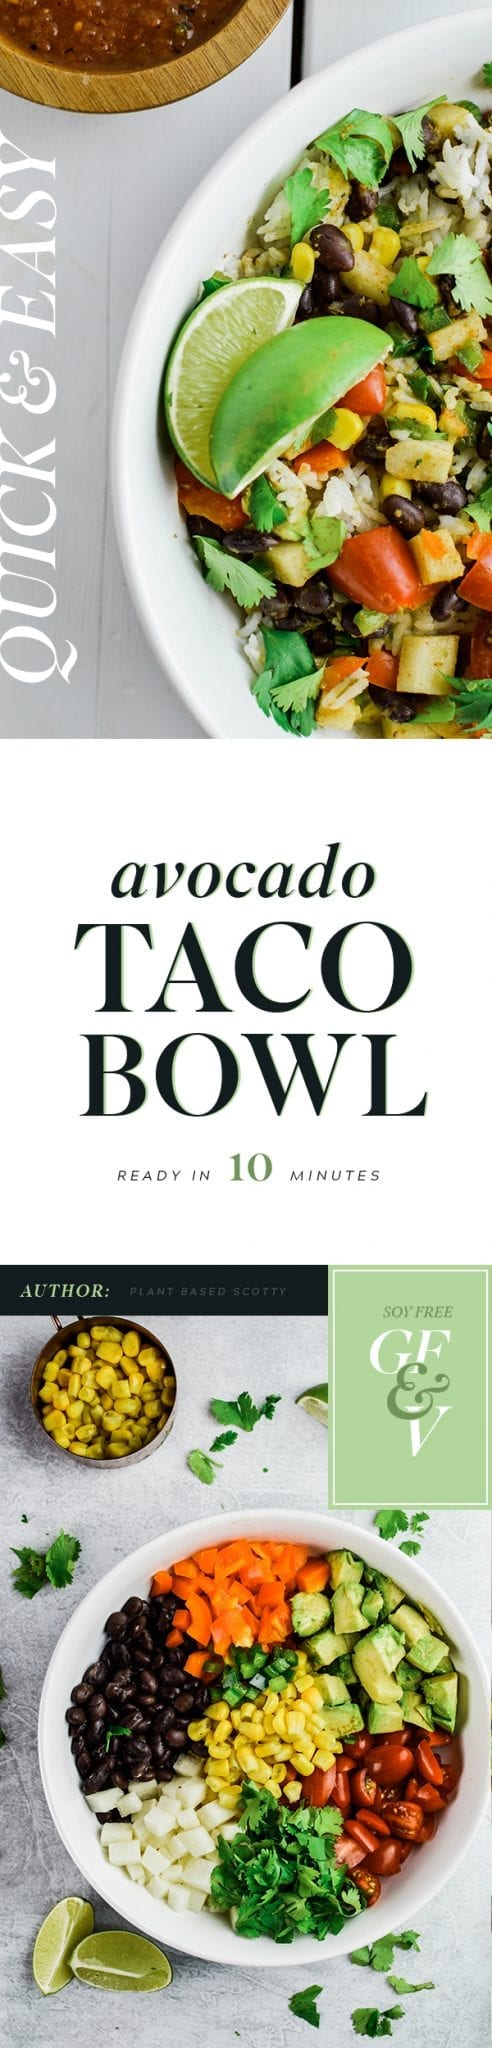 Quick and Easy 10-minute Avocado Taco Bowl | Vegan | Gluten-Free | Soy-Free